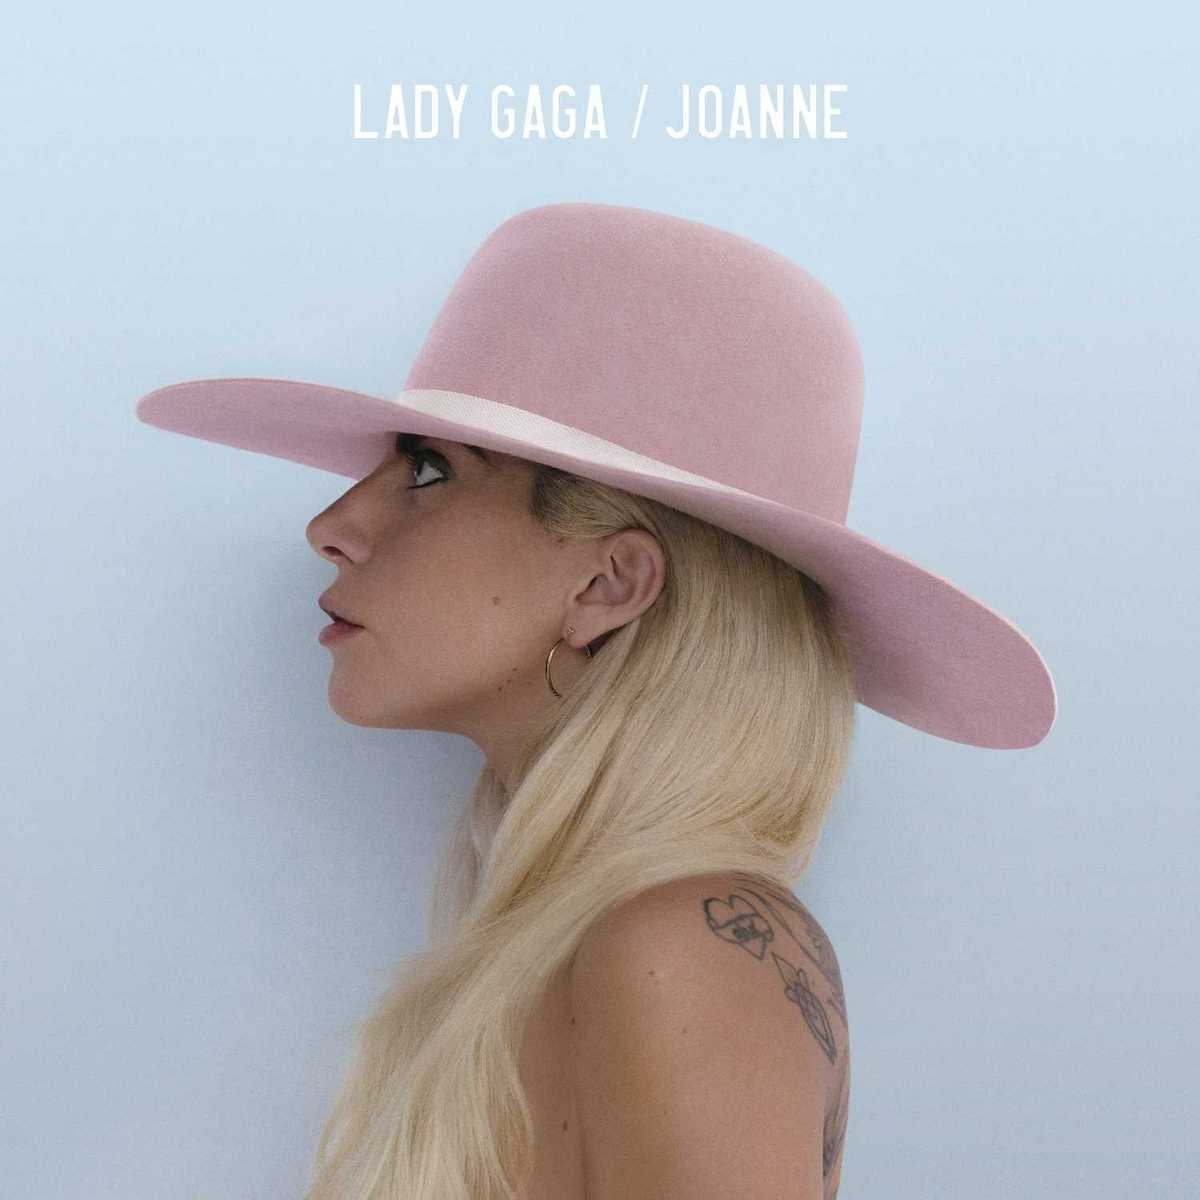 REVIEW: 'Joanne' - Lady Gaga